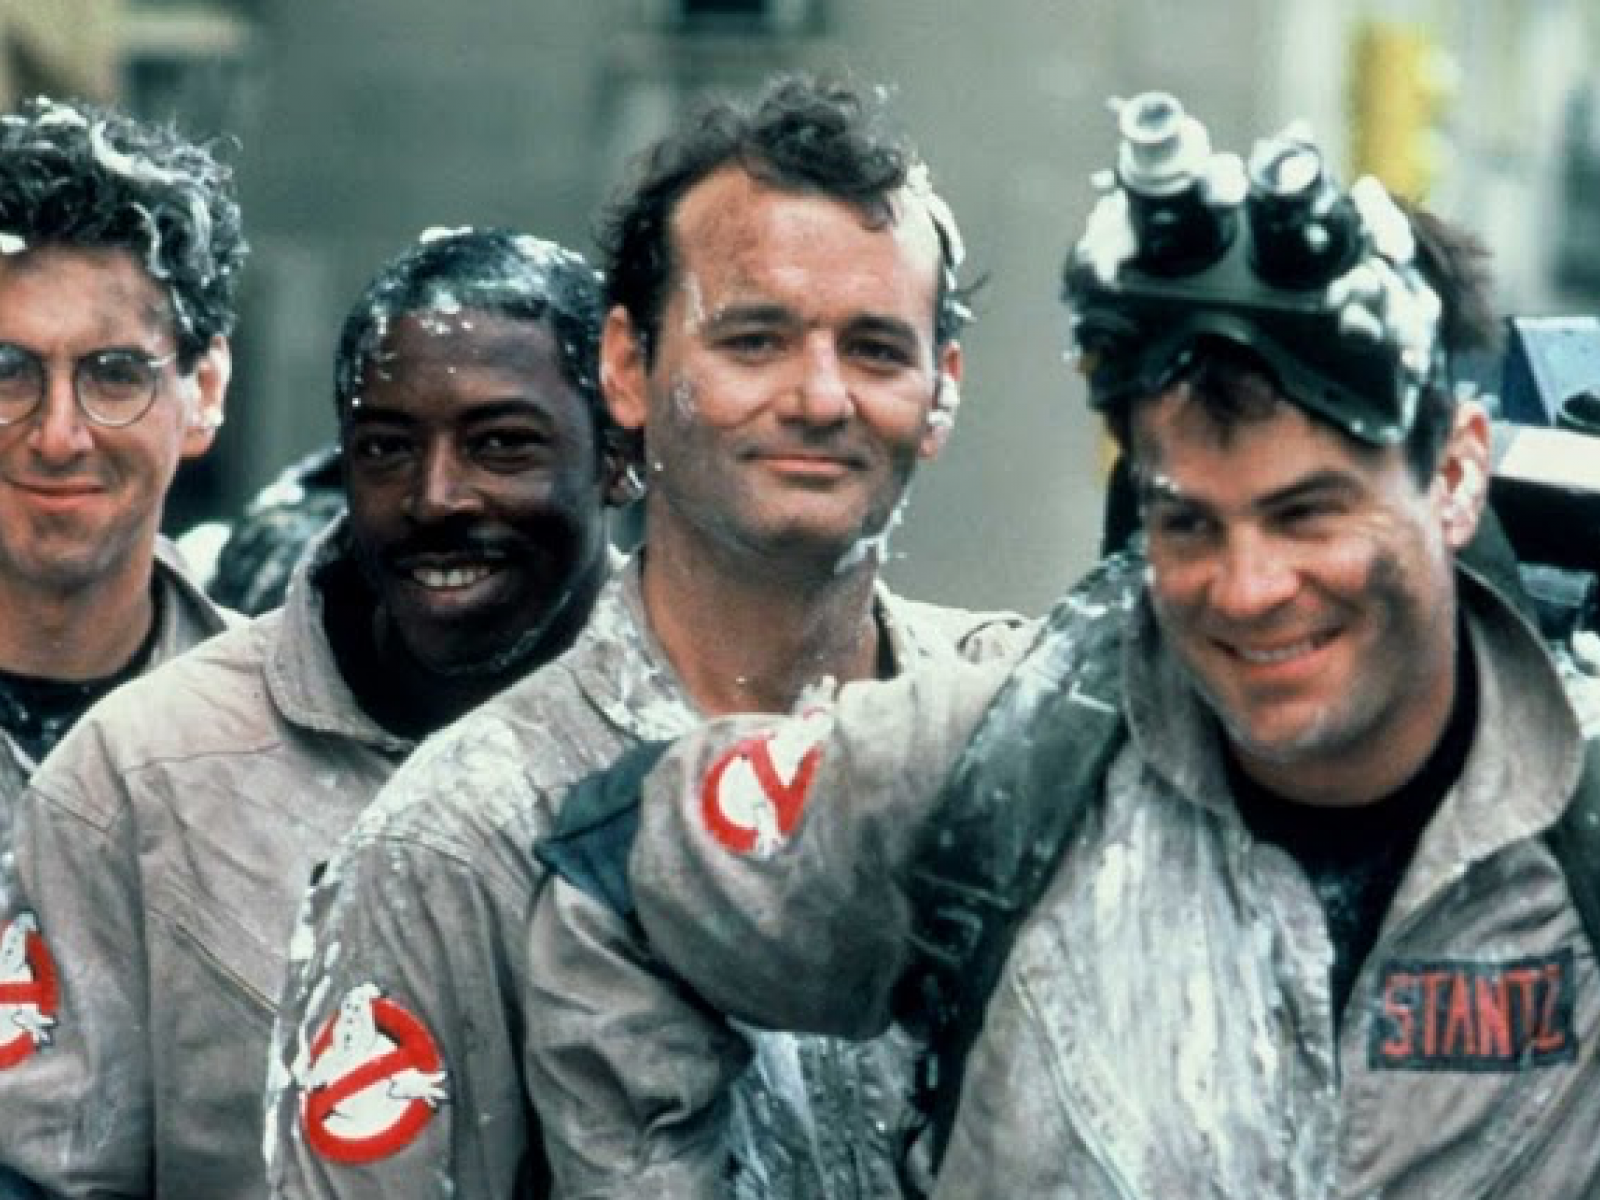 Main image for event titled 2019 Ghostbusters Fan Fest, presented by Wizard World